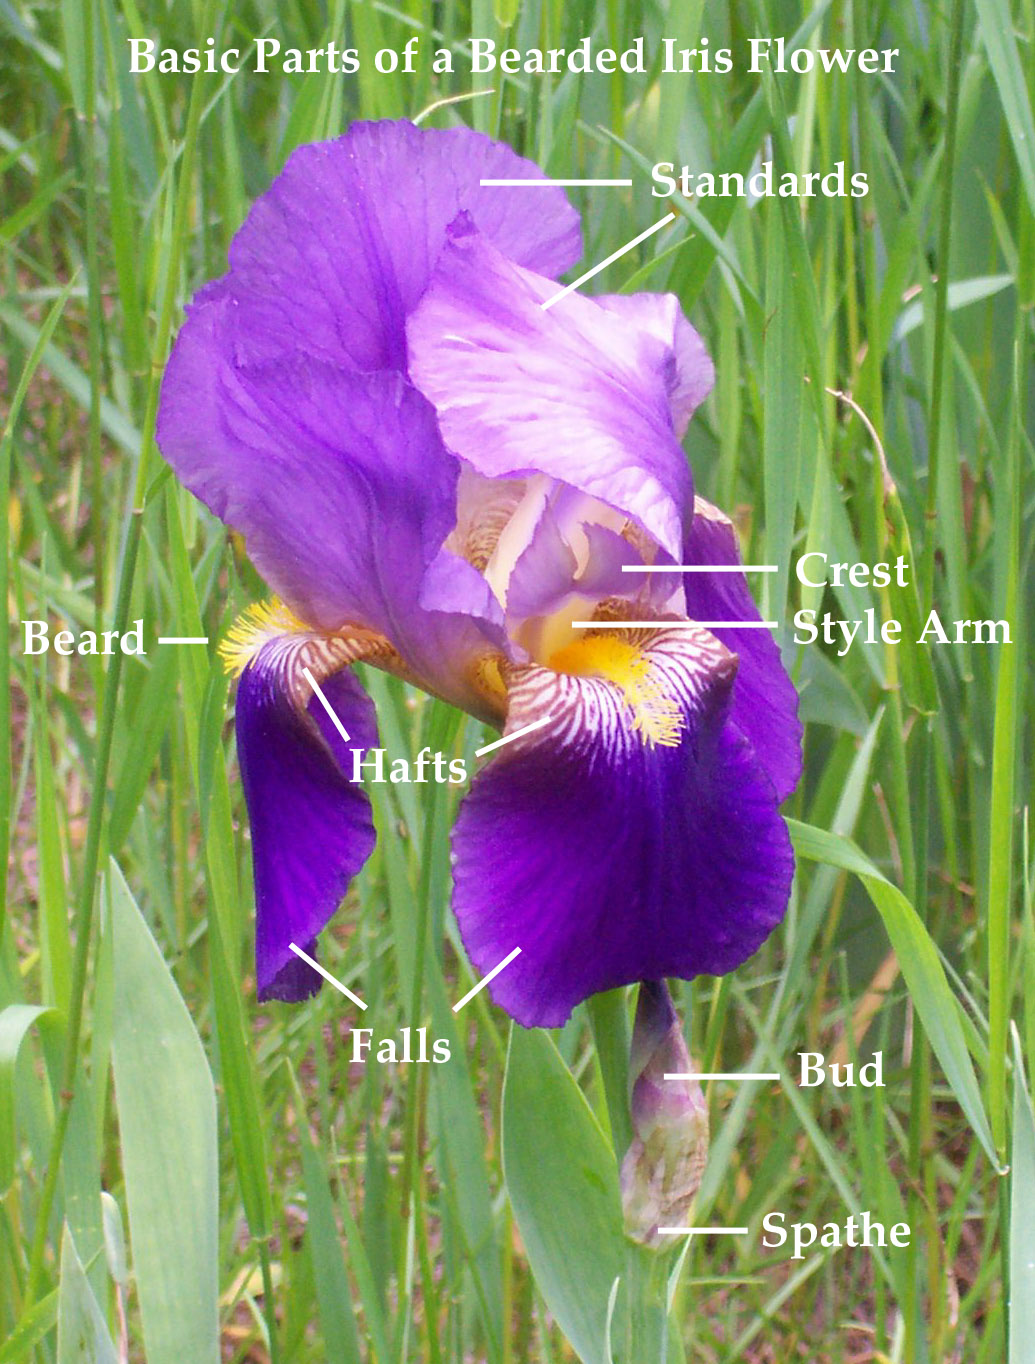 Iris basics parts of an iris historic iris preservation society iris basics parts of an iris izmirmasajfo